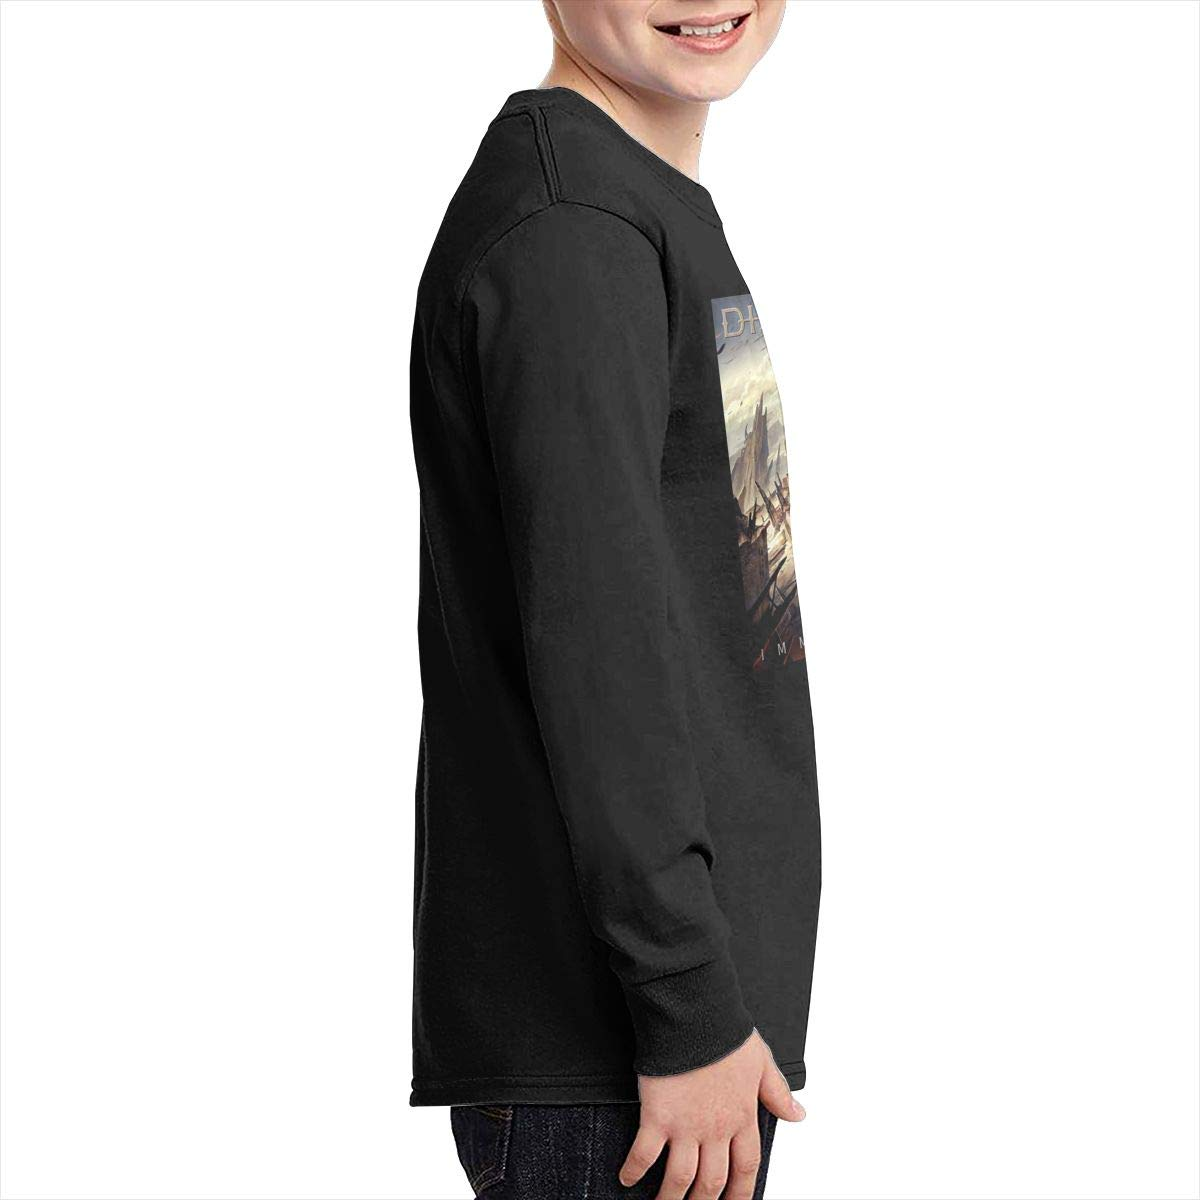 MichaelHazzard Disturbed Tour 2019 Youth Breathable Long Sleeve Crewneck Tee T-Shirt for Boys and Girls